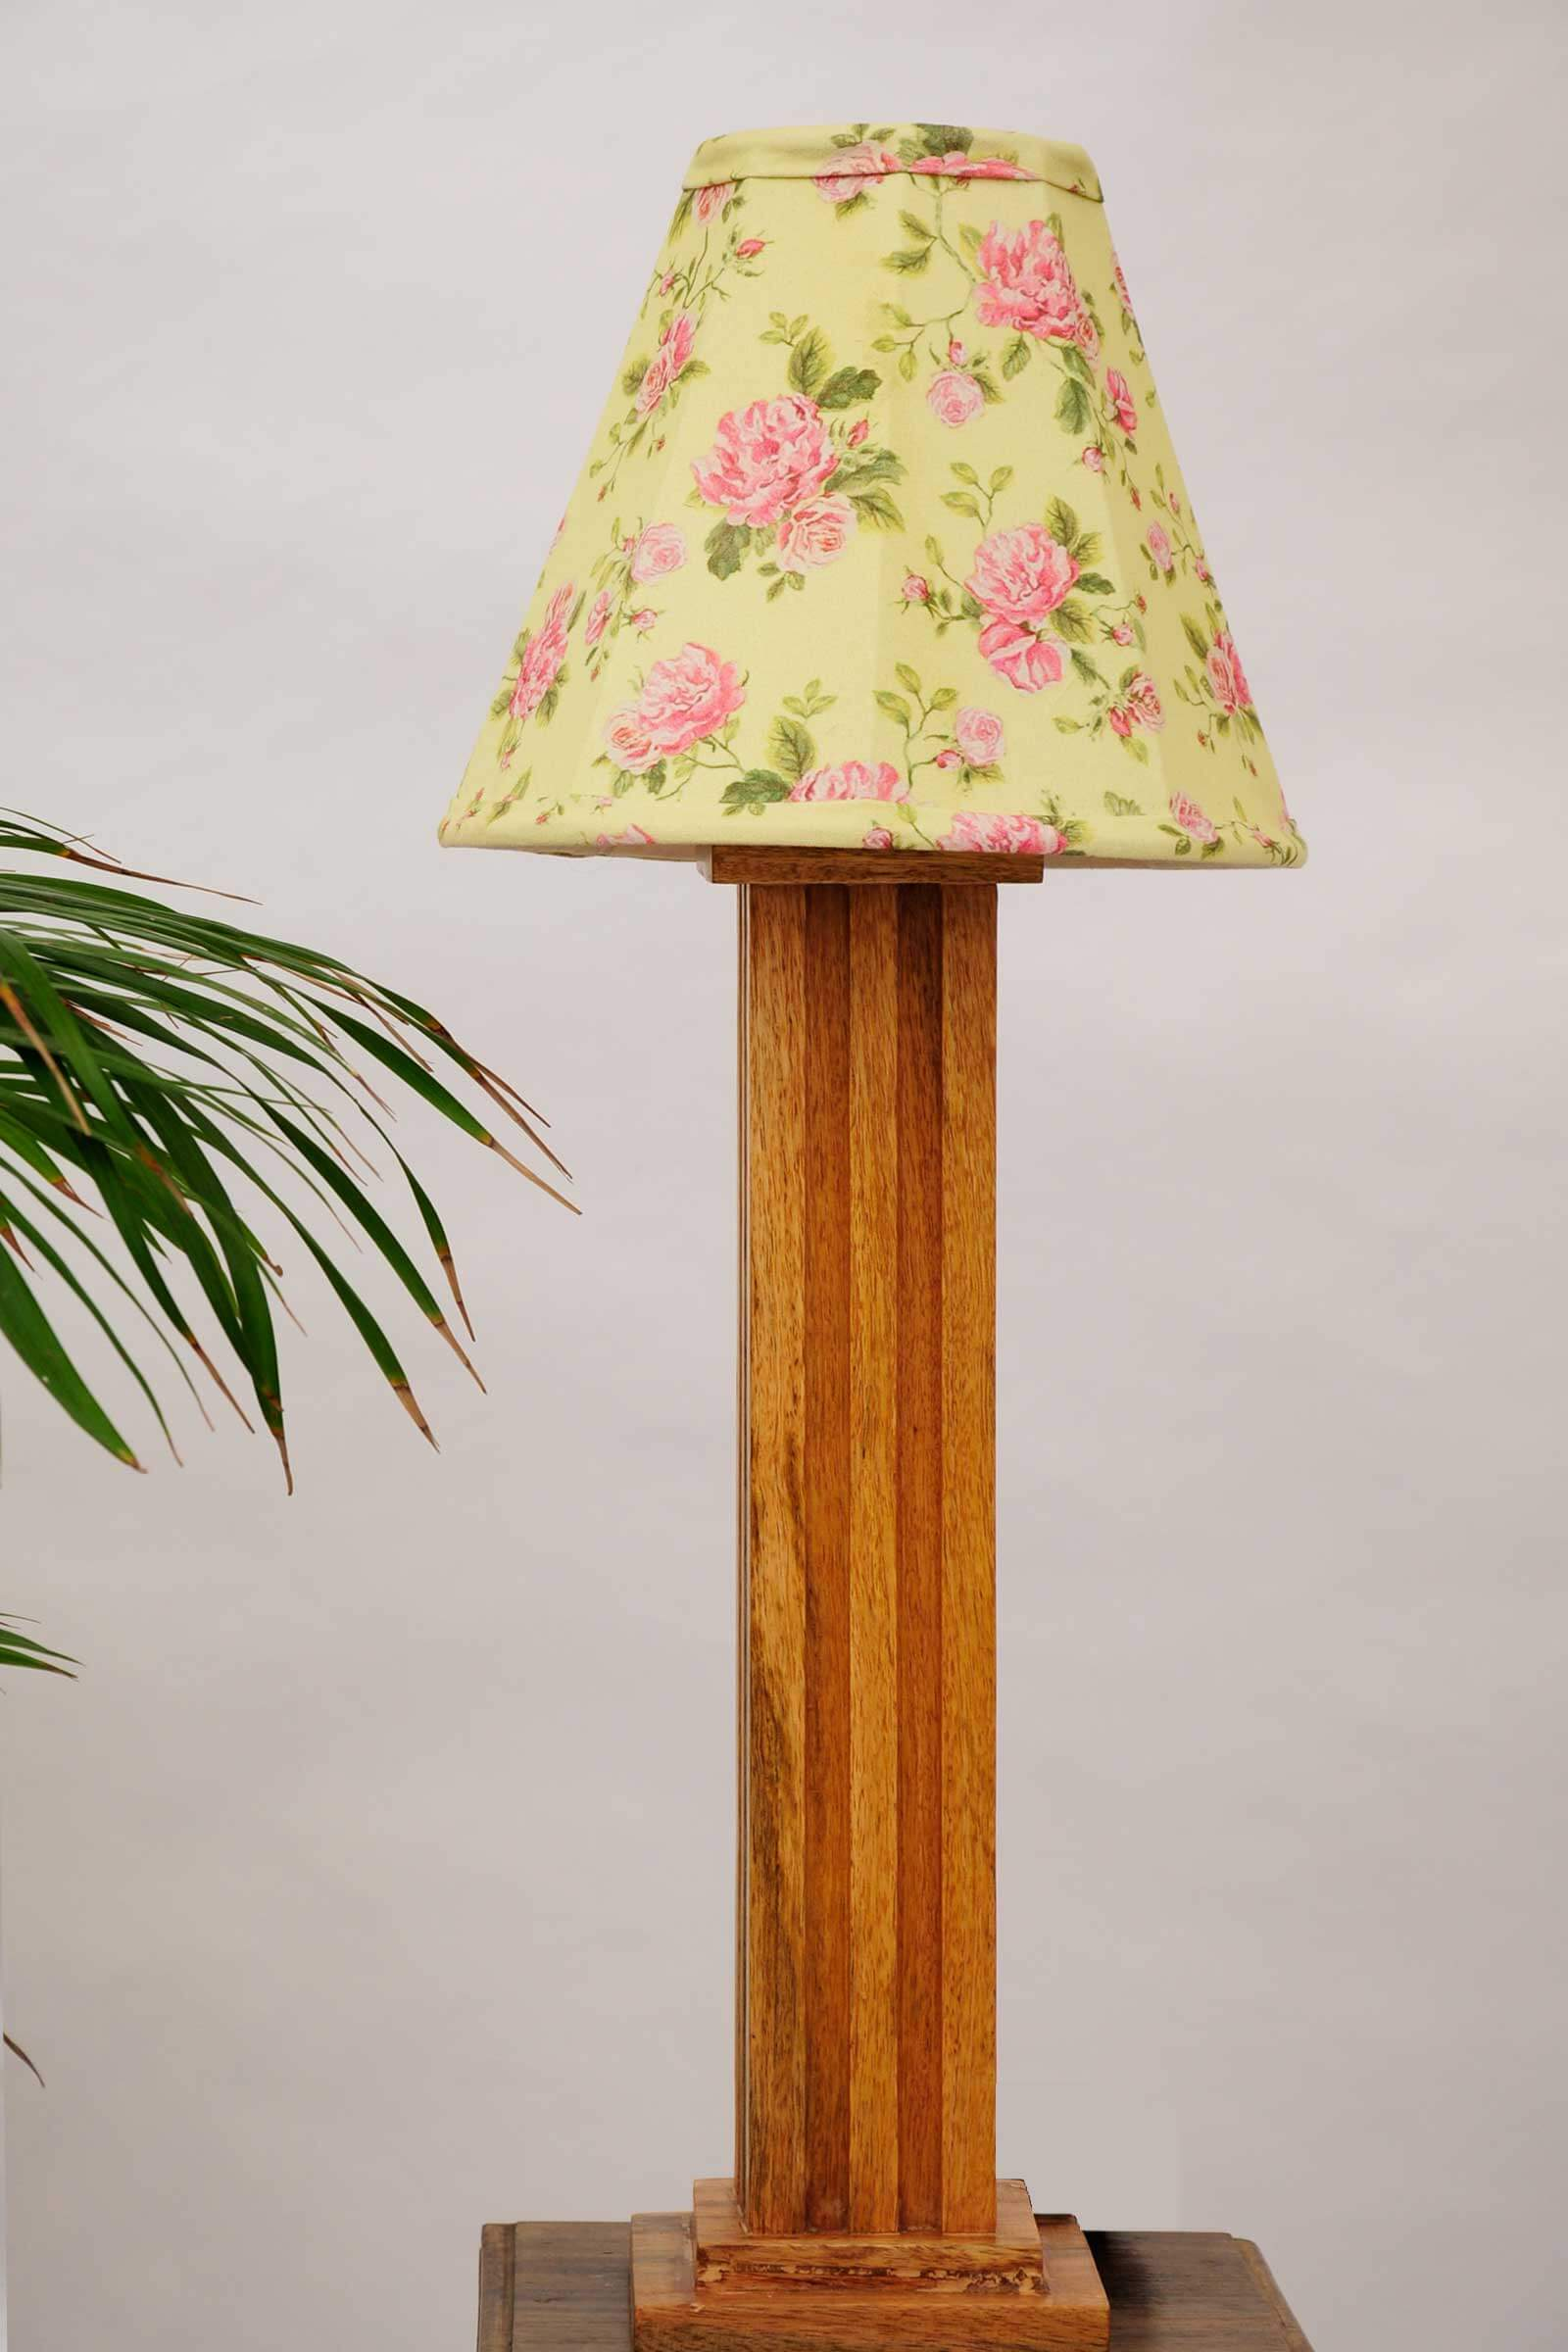 Rose mojito lamp shade